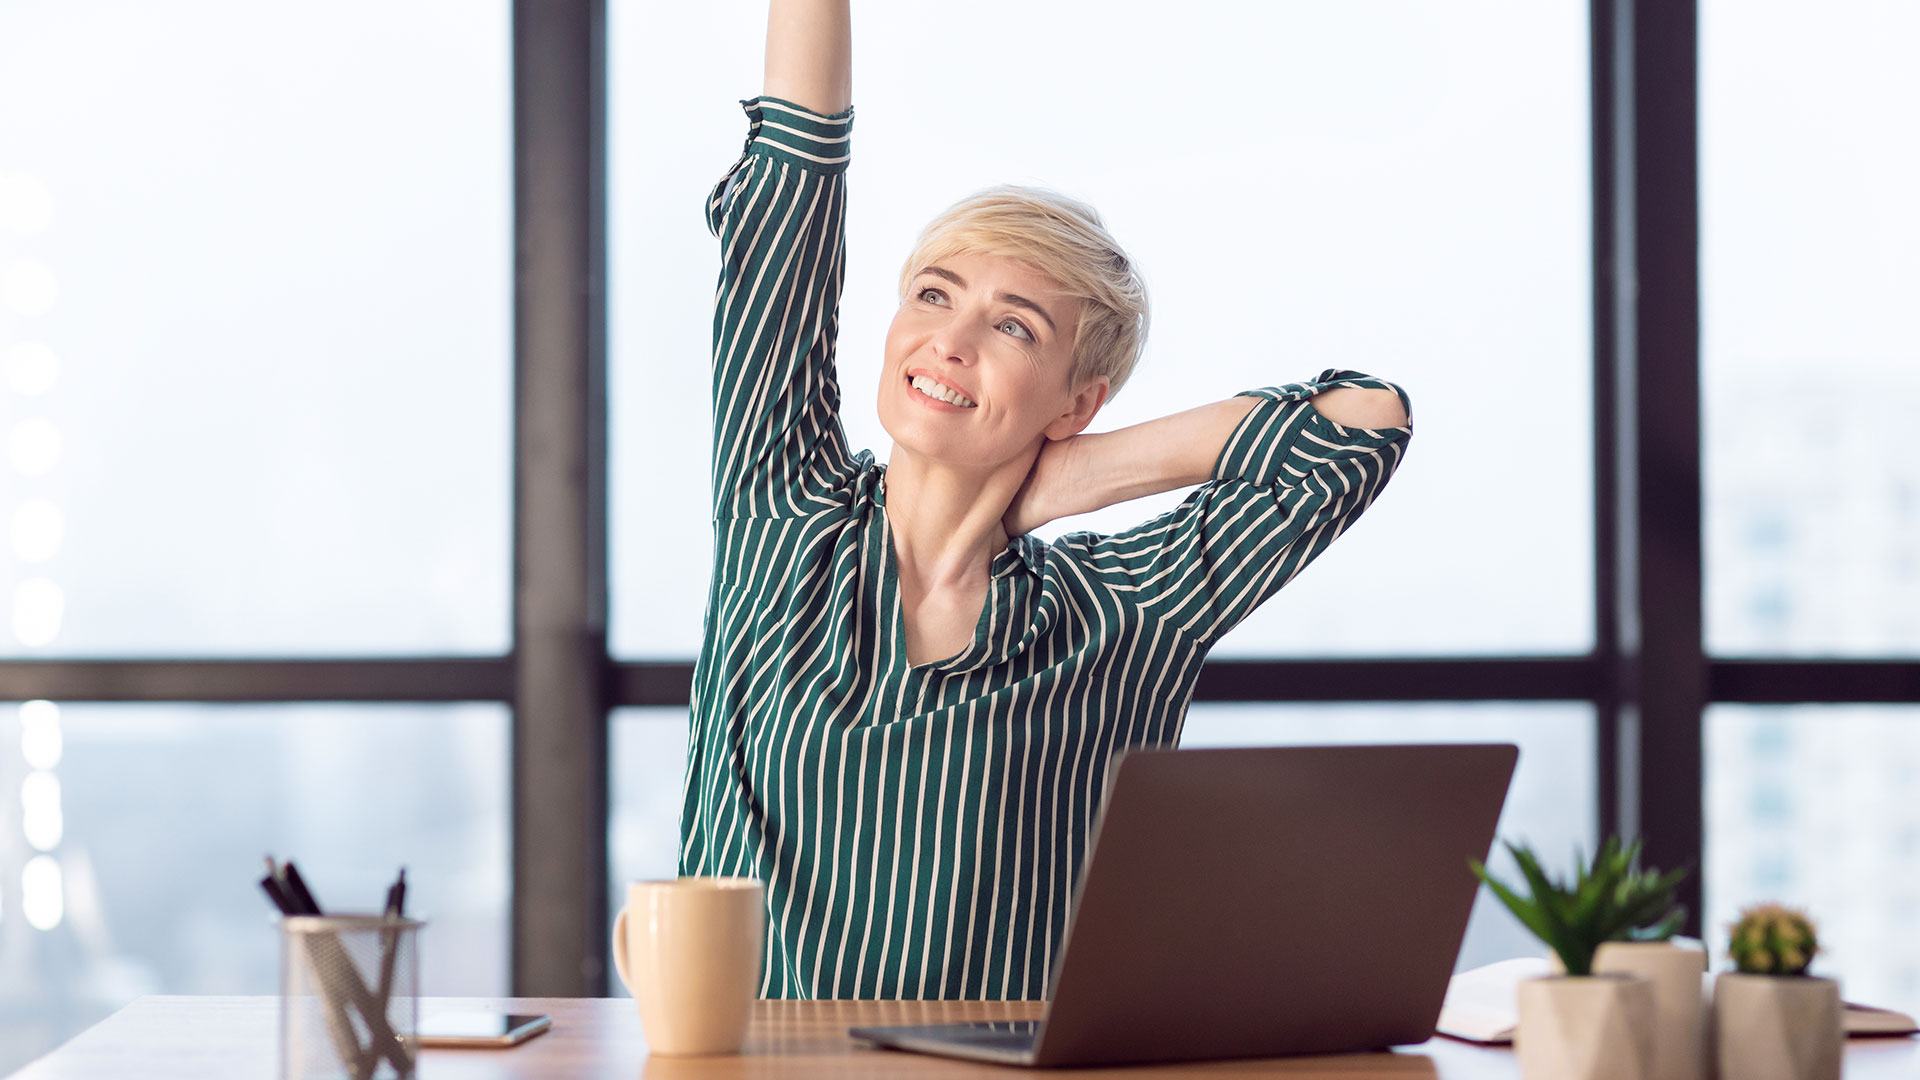 Woman in an office stretches her arms and neck while seated in her desk chair.